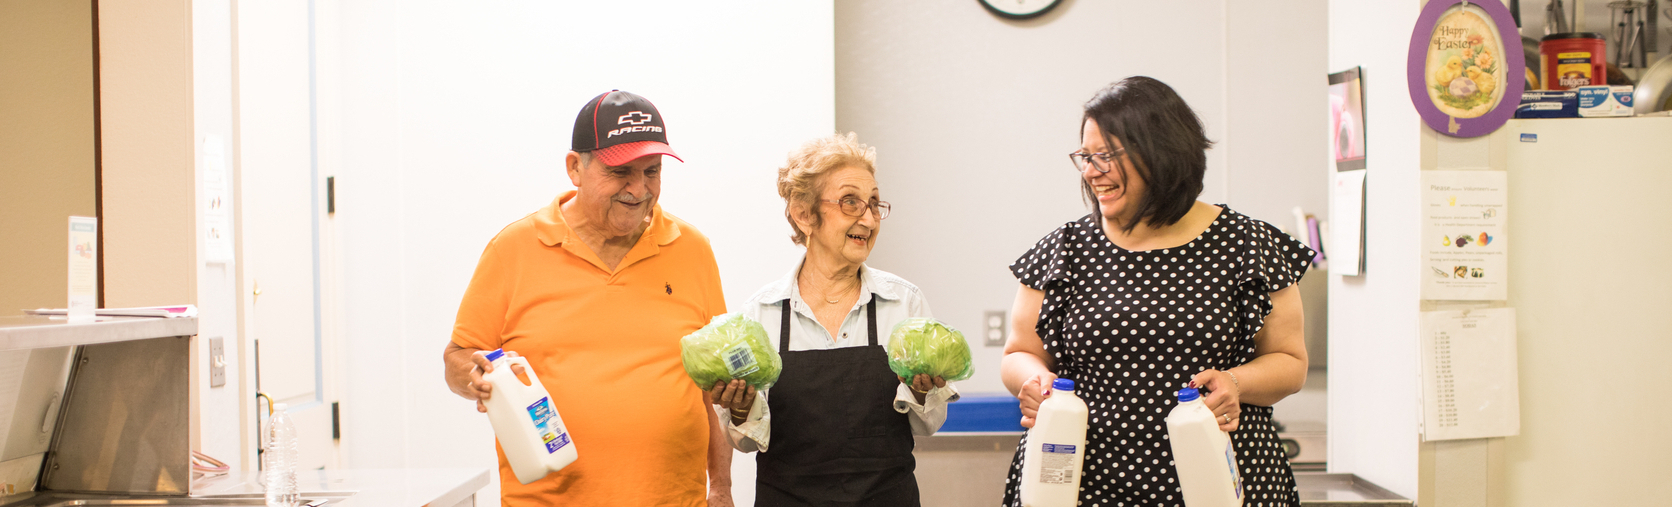 Residents Cruz Arrieda (orange shirt) and Victoria Marotta (older woman in apron) also volunteer in the kitchen. Crystal Reuwjo (Community Engagement Manager at MAUC ) also helping - seen on the right.